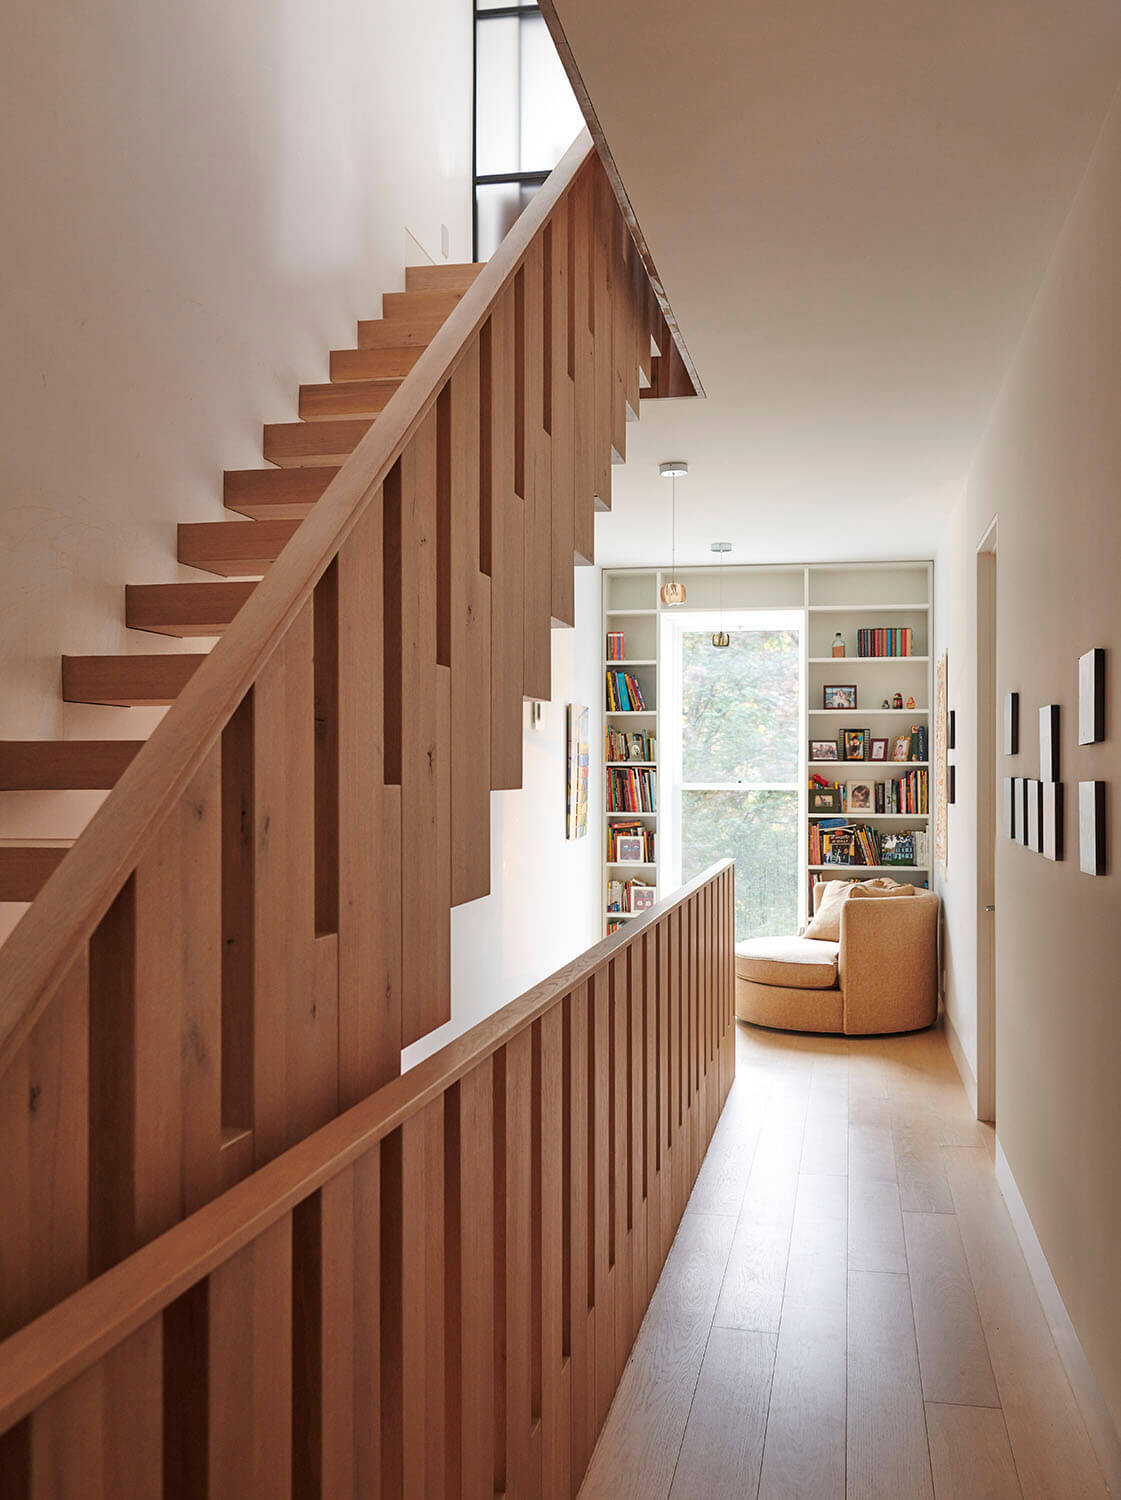 In this Park Slope addition, solid oak stair treads first cantilever from the wall, then turn up 90° to form a balustrade.